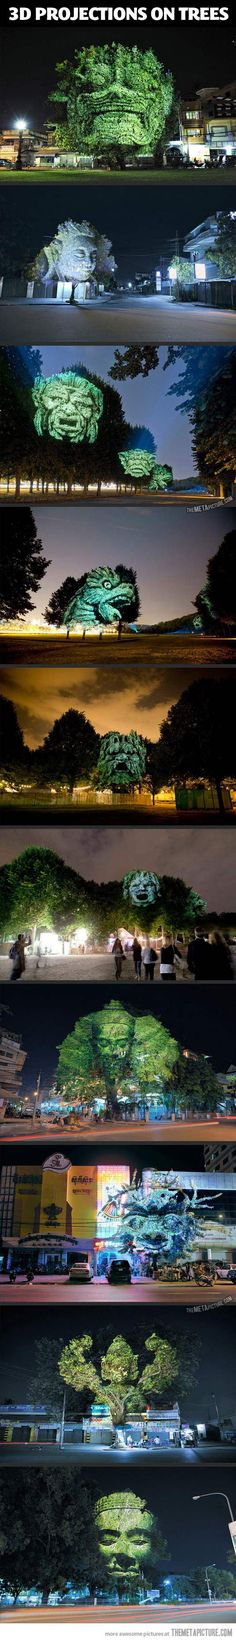 Projecting 3D faces on trees…